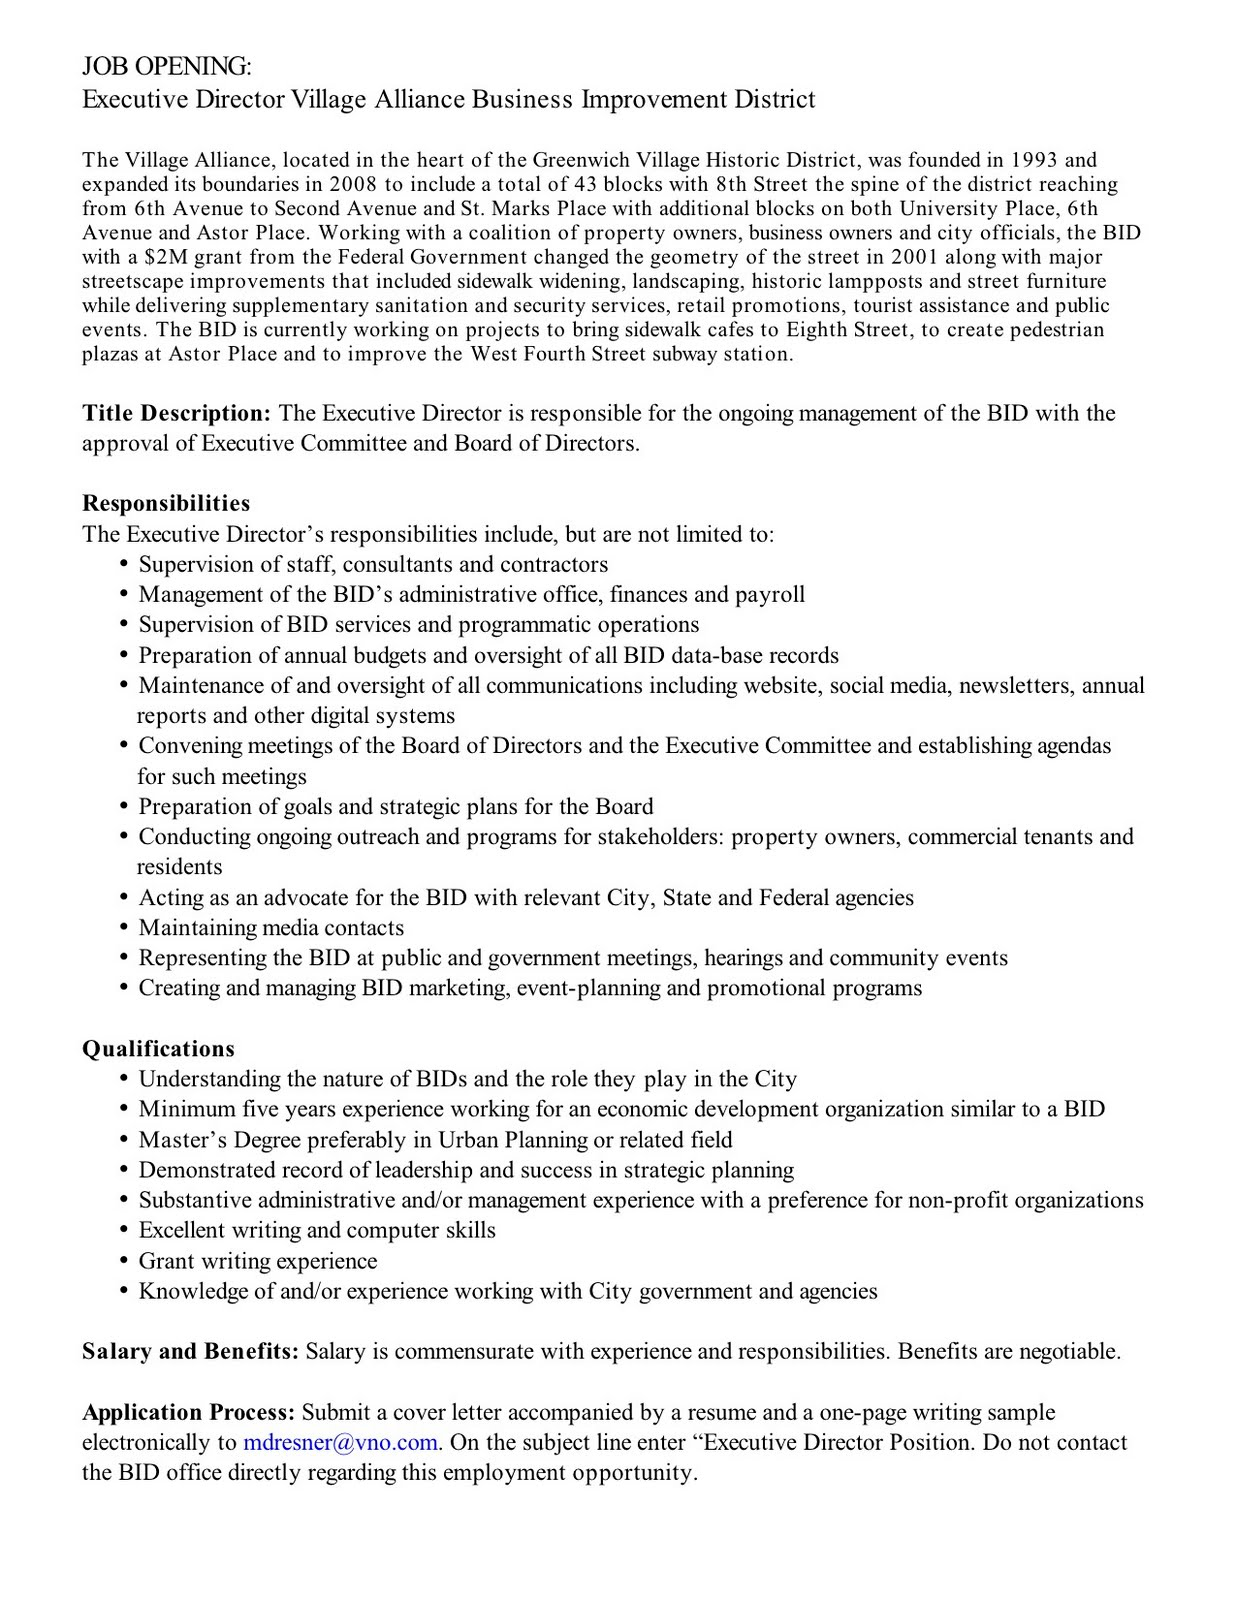 Non Profit Executive Director Cover Letter Sample